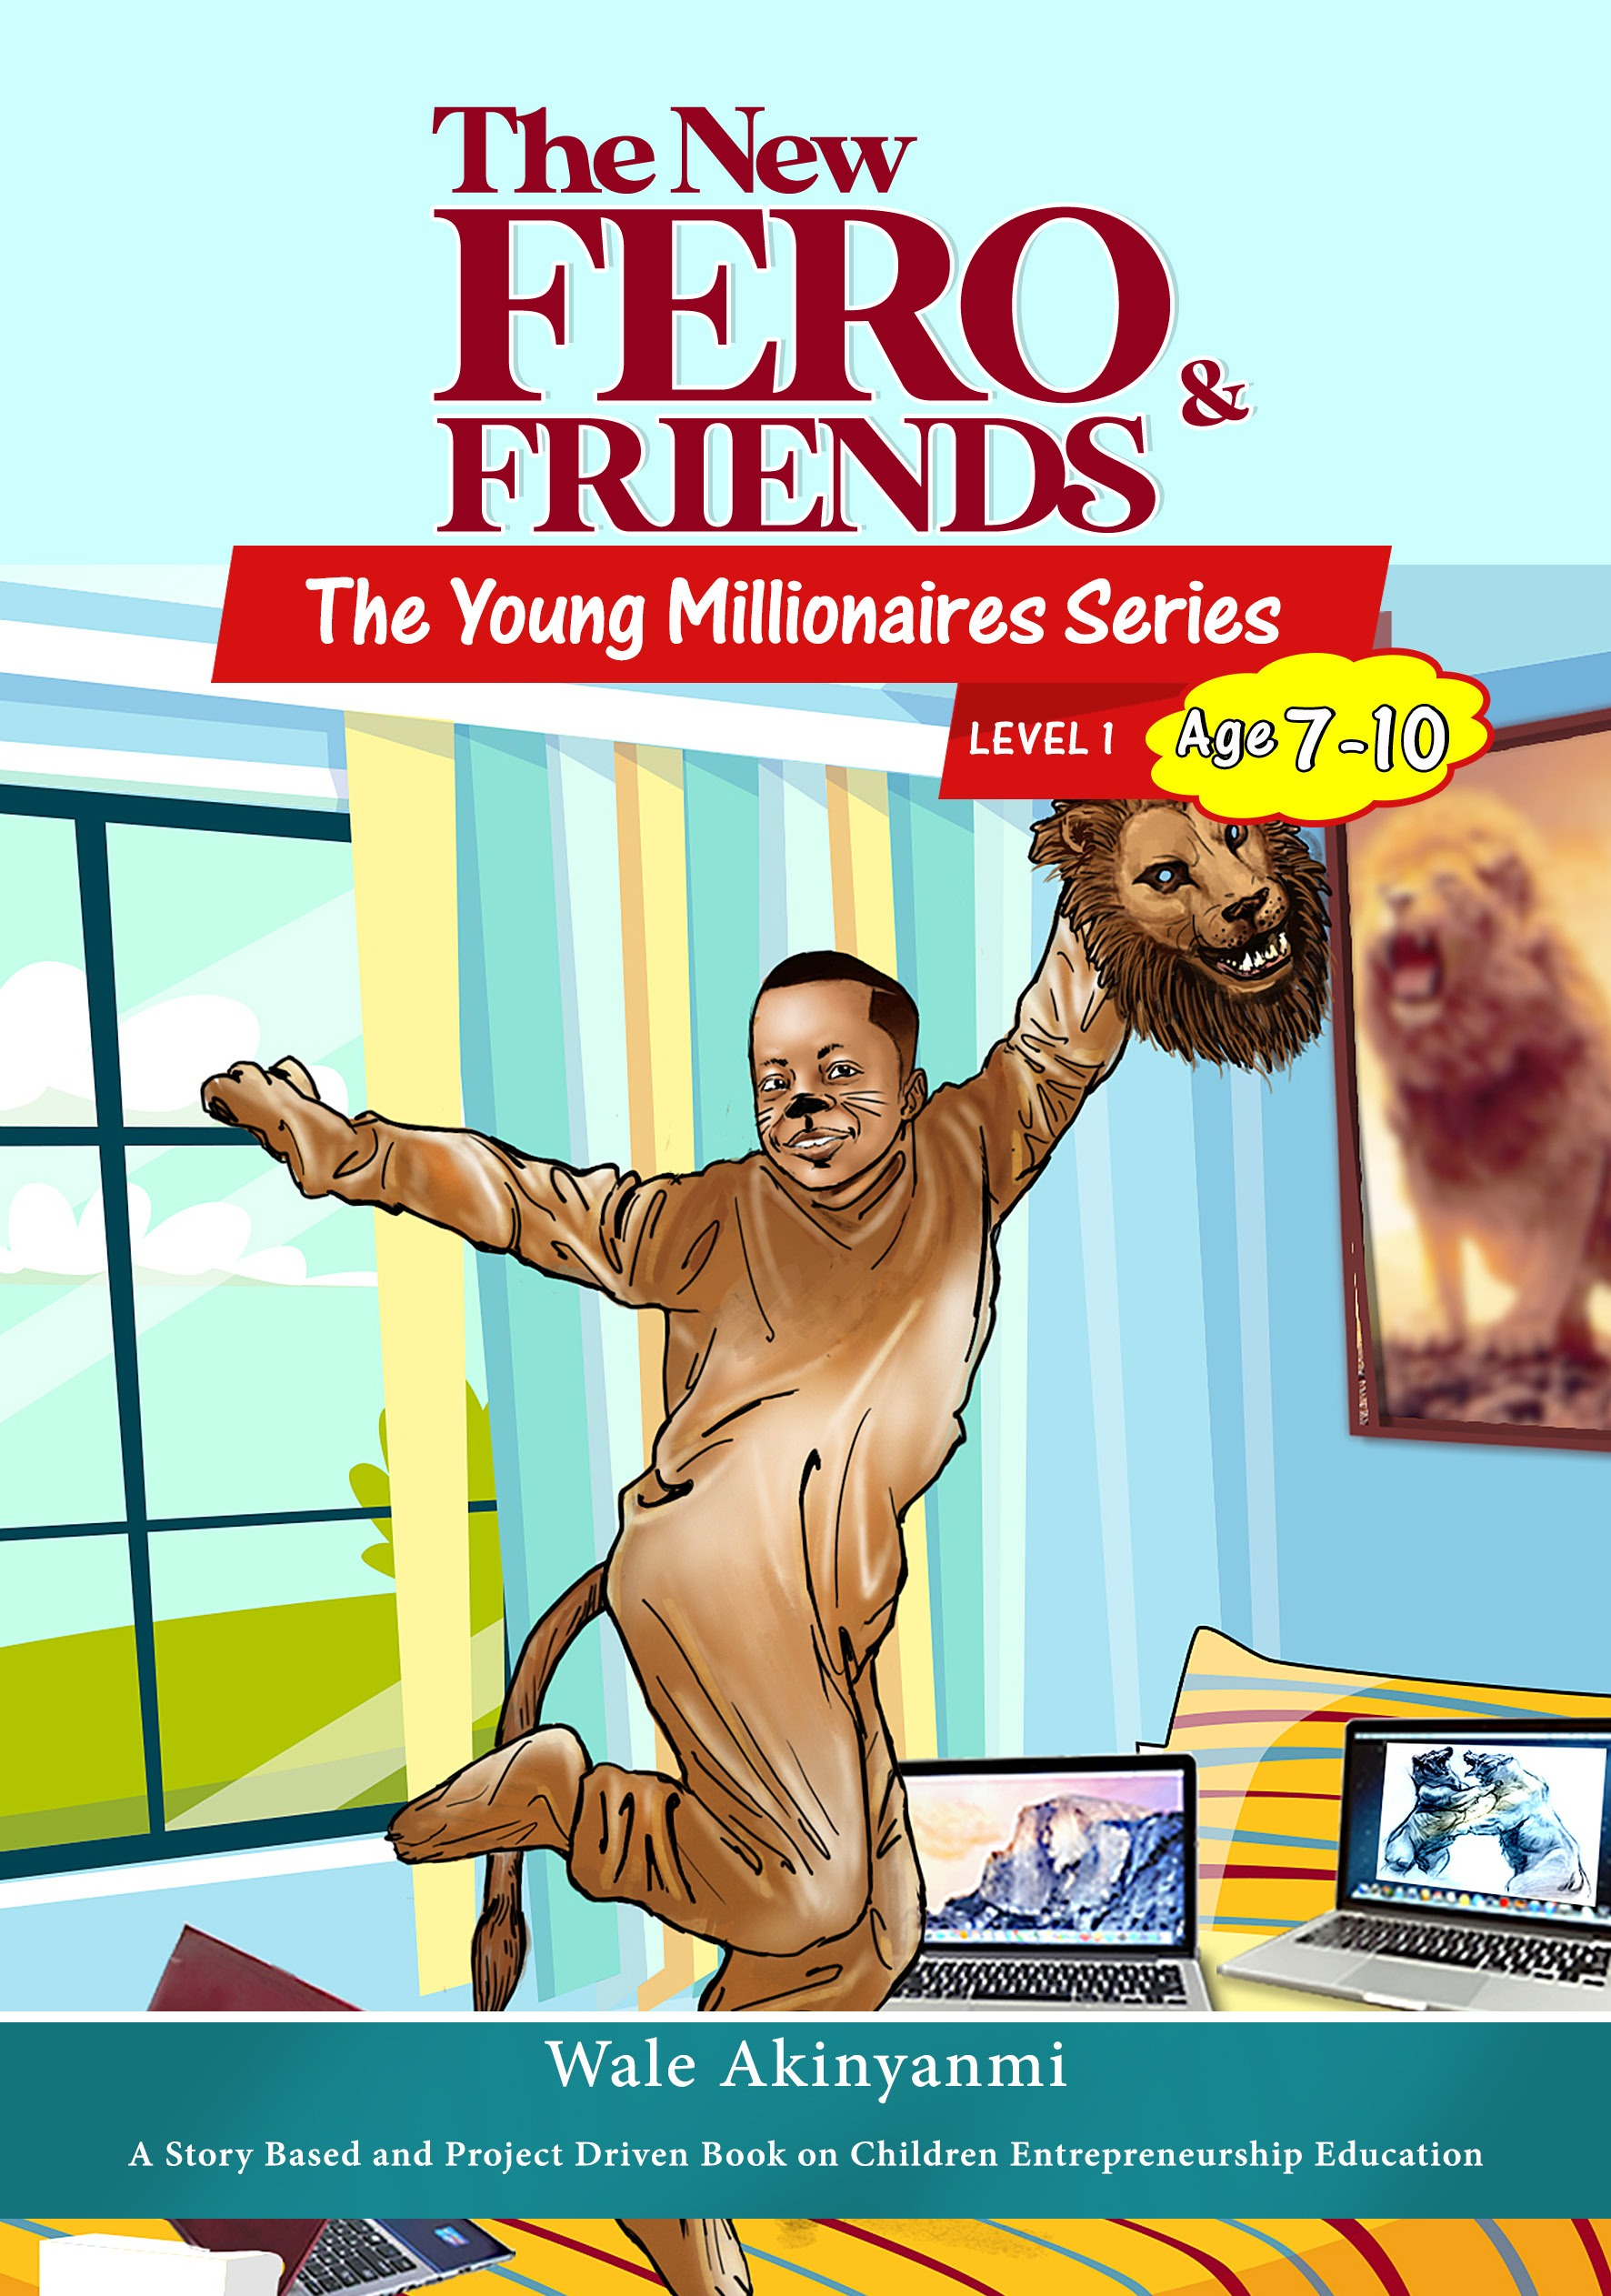 The New Fero and Friends: The Young Millionaires Series